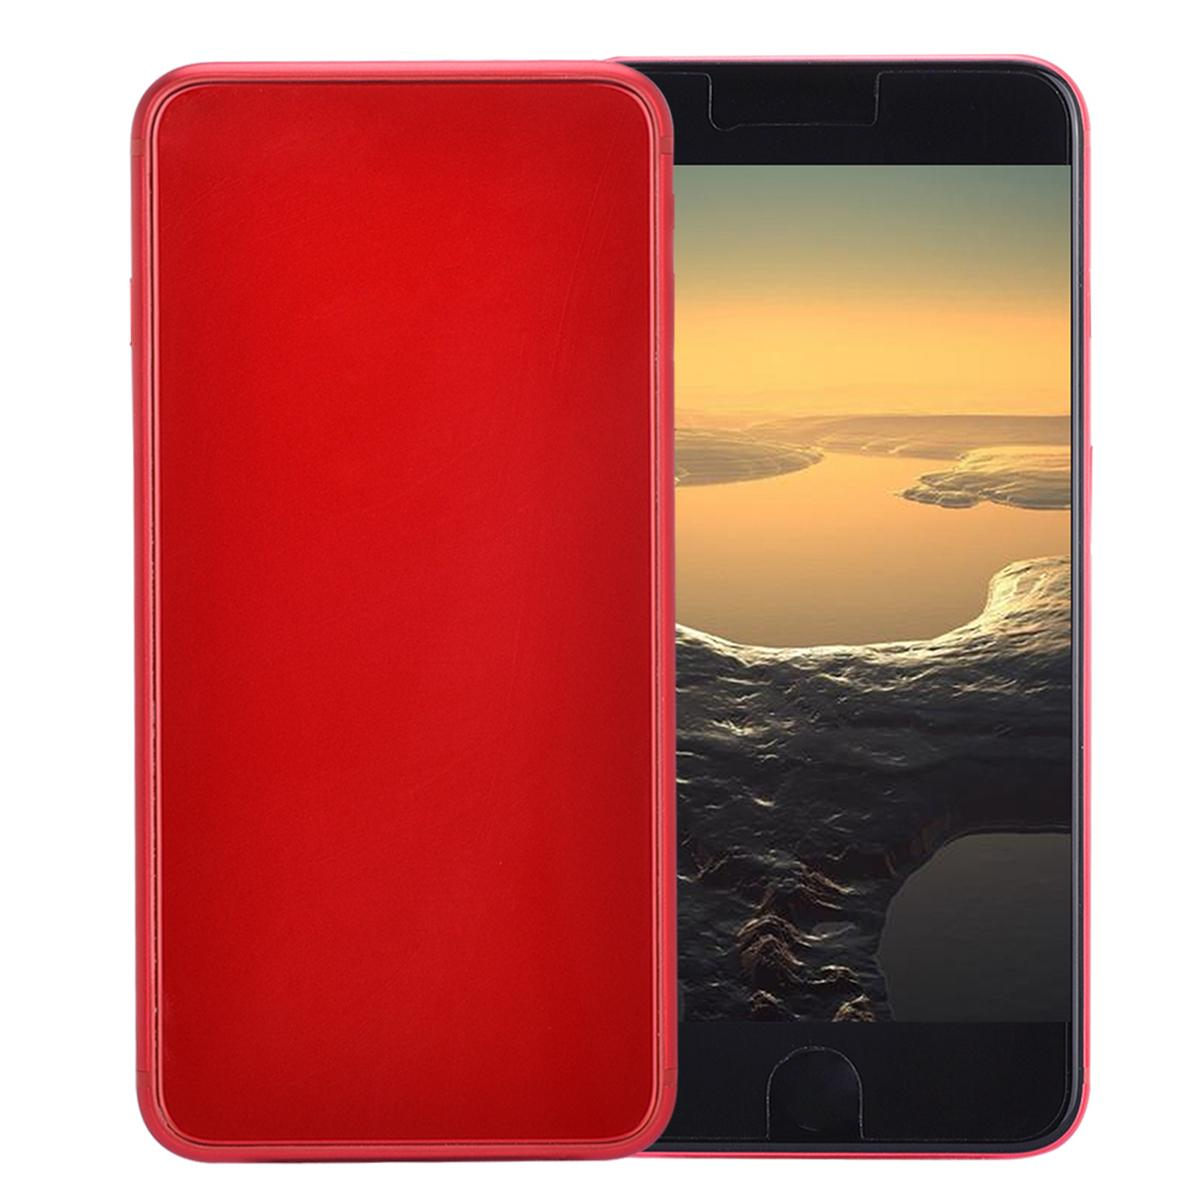 Cheap Goophone i8 Plus V2 3G WCDMA Quad Core MTK6580 1.3GHz 512MB 4GB Android OS 5.5 inch IPS HD Screen GPS 5MP Camera Metal Body Smartphone